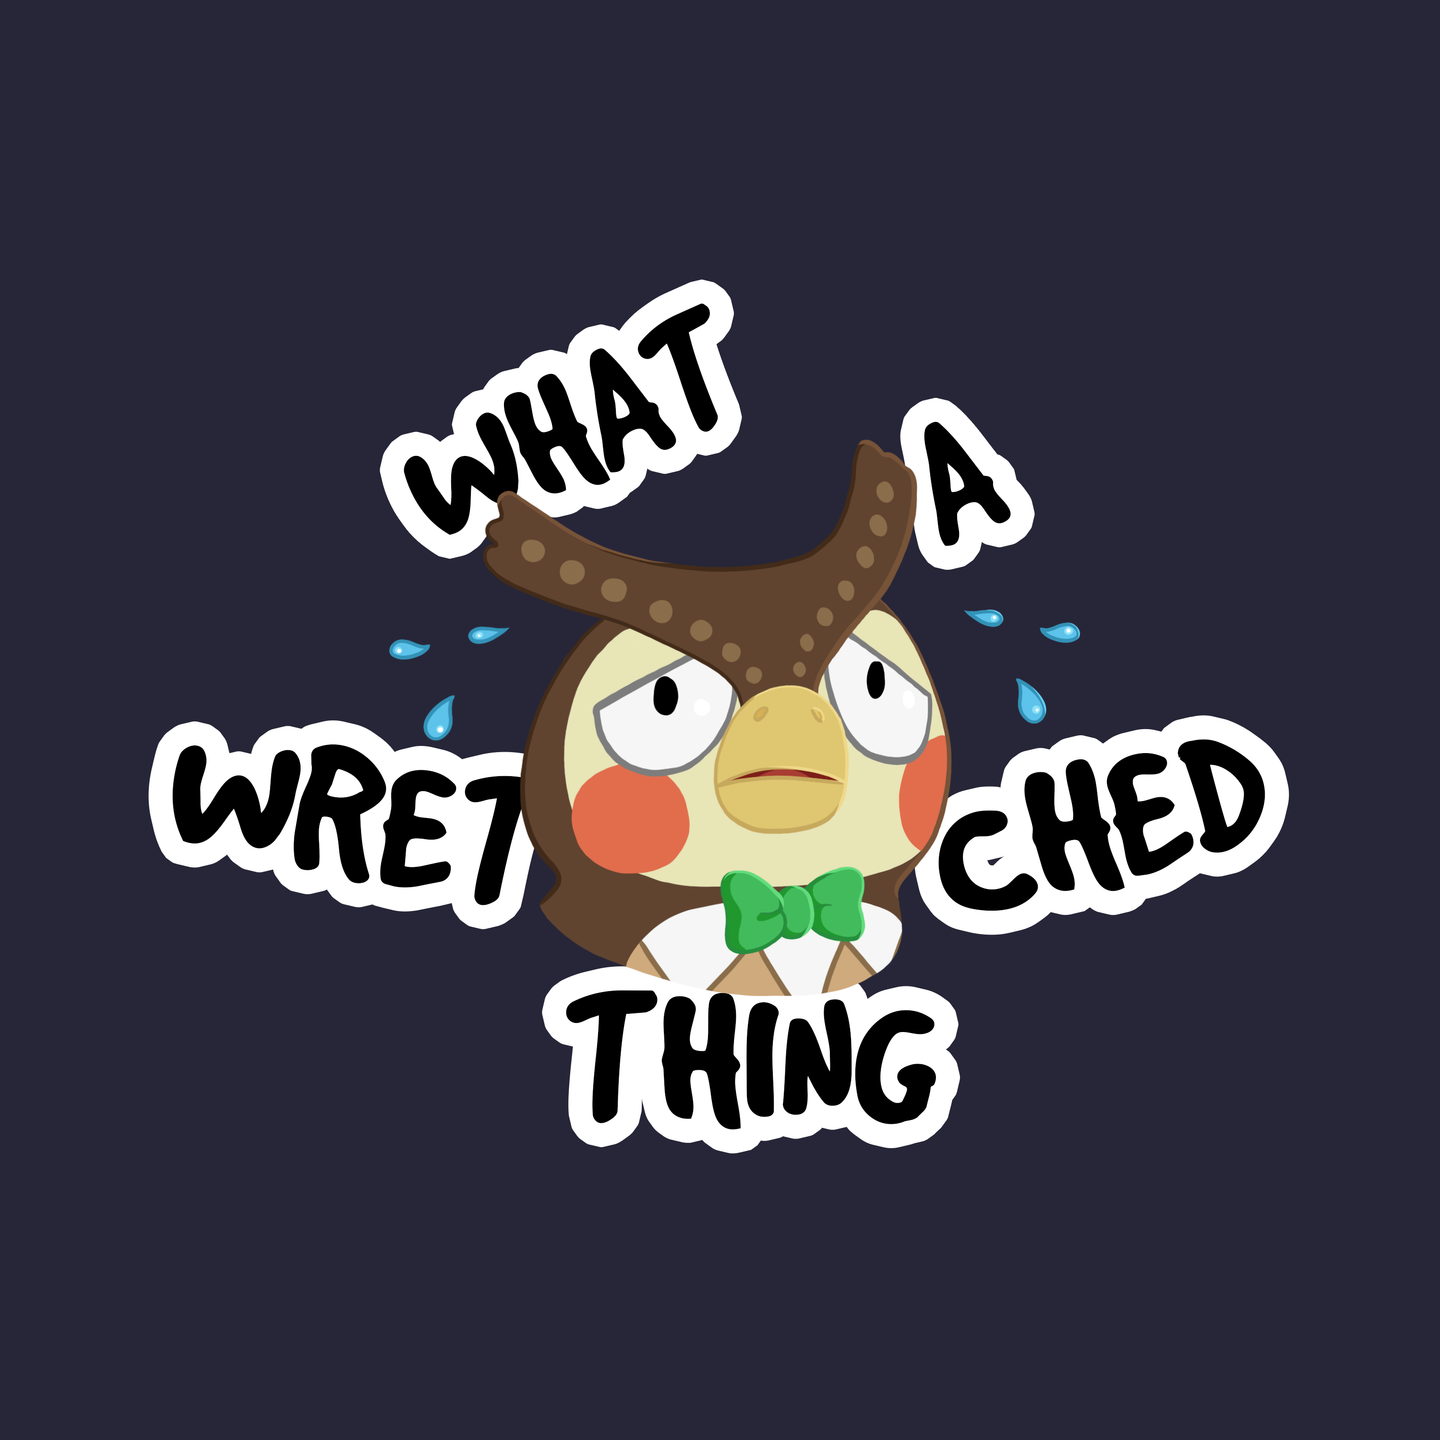 Wretched Thing - Blathers from Animal Crossing T-Shirt